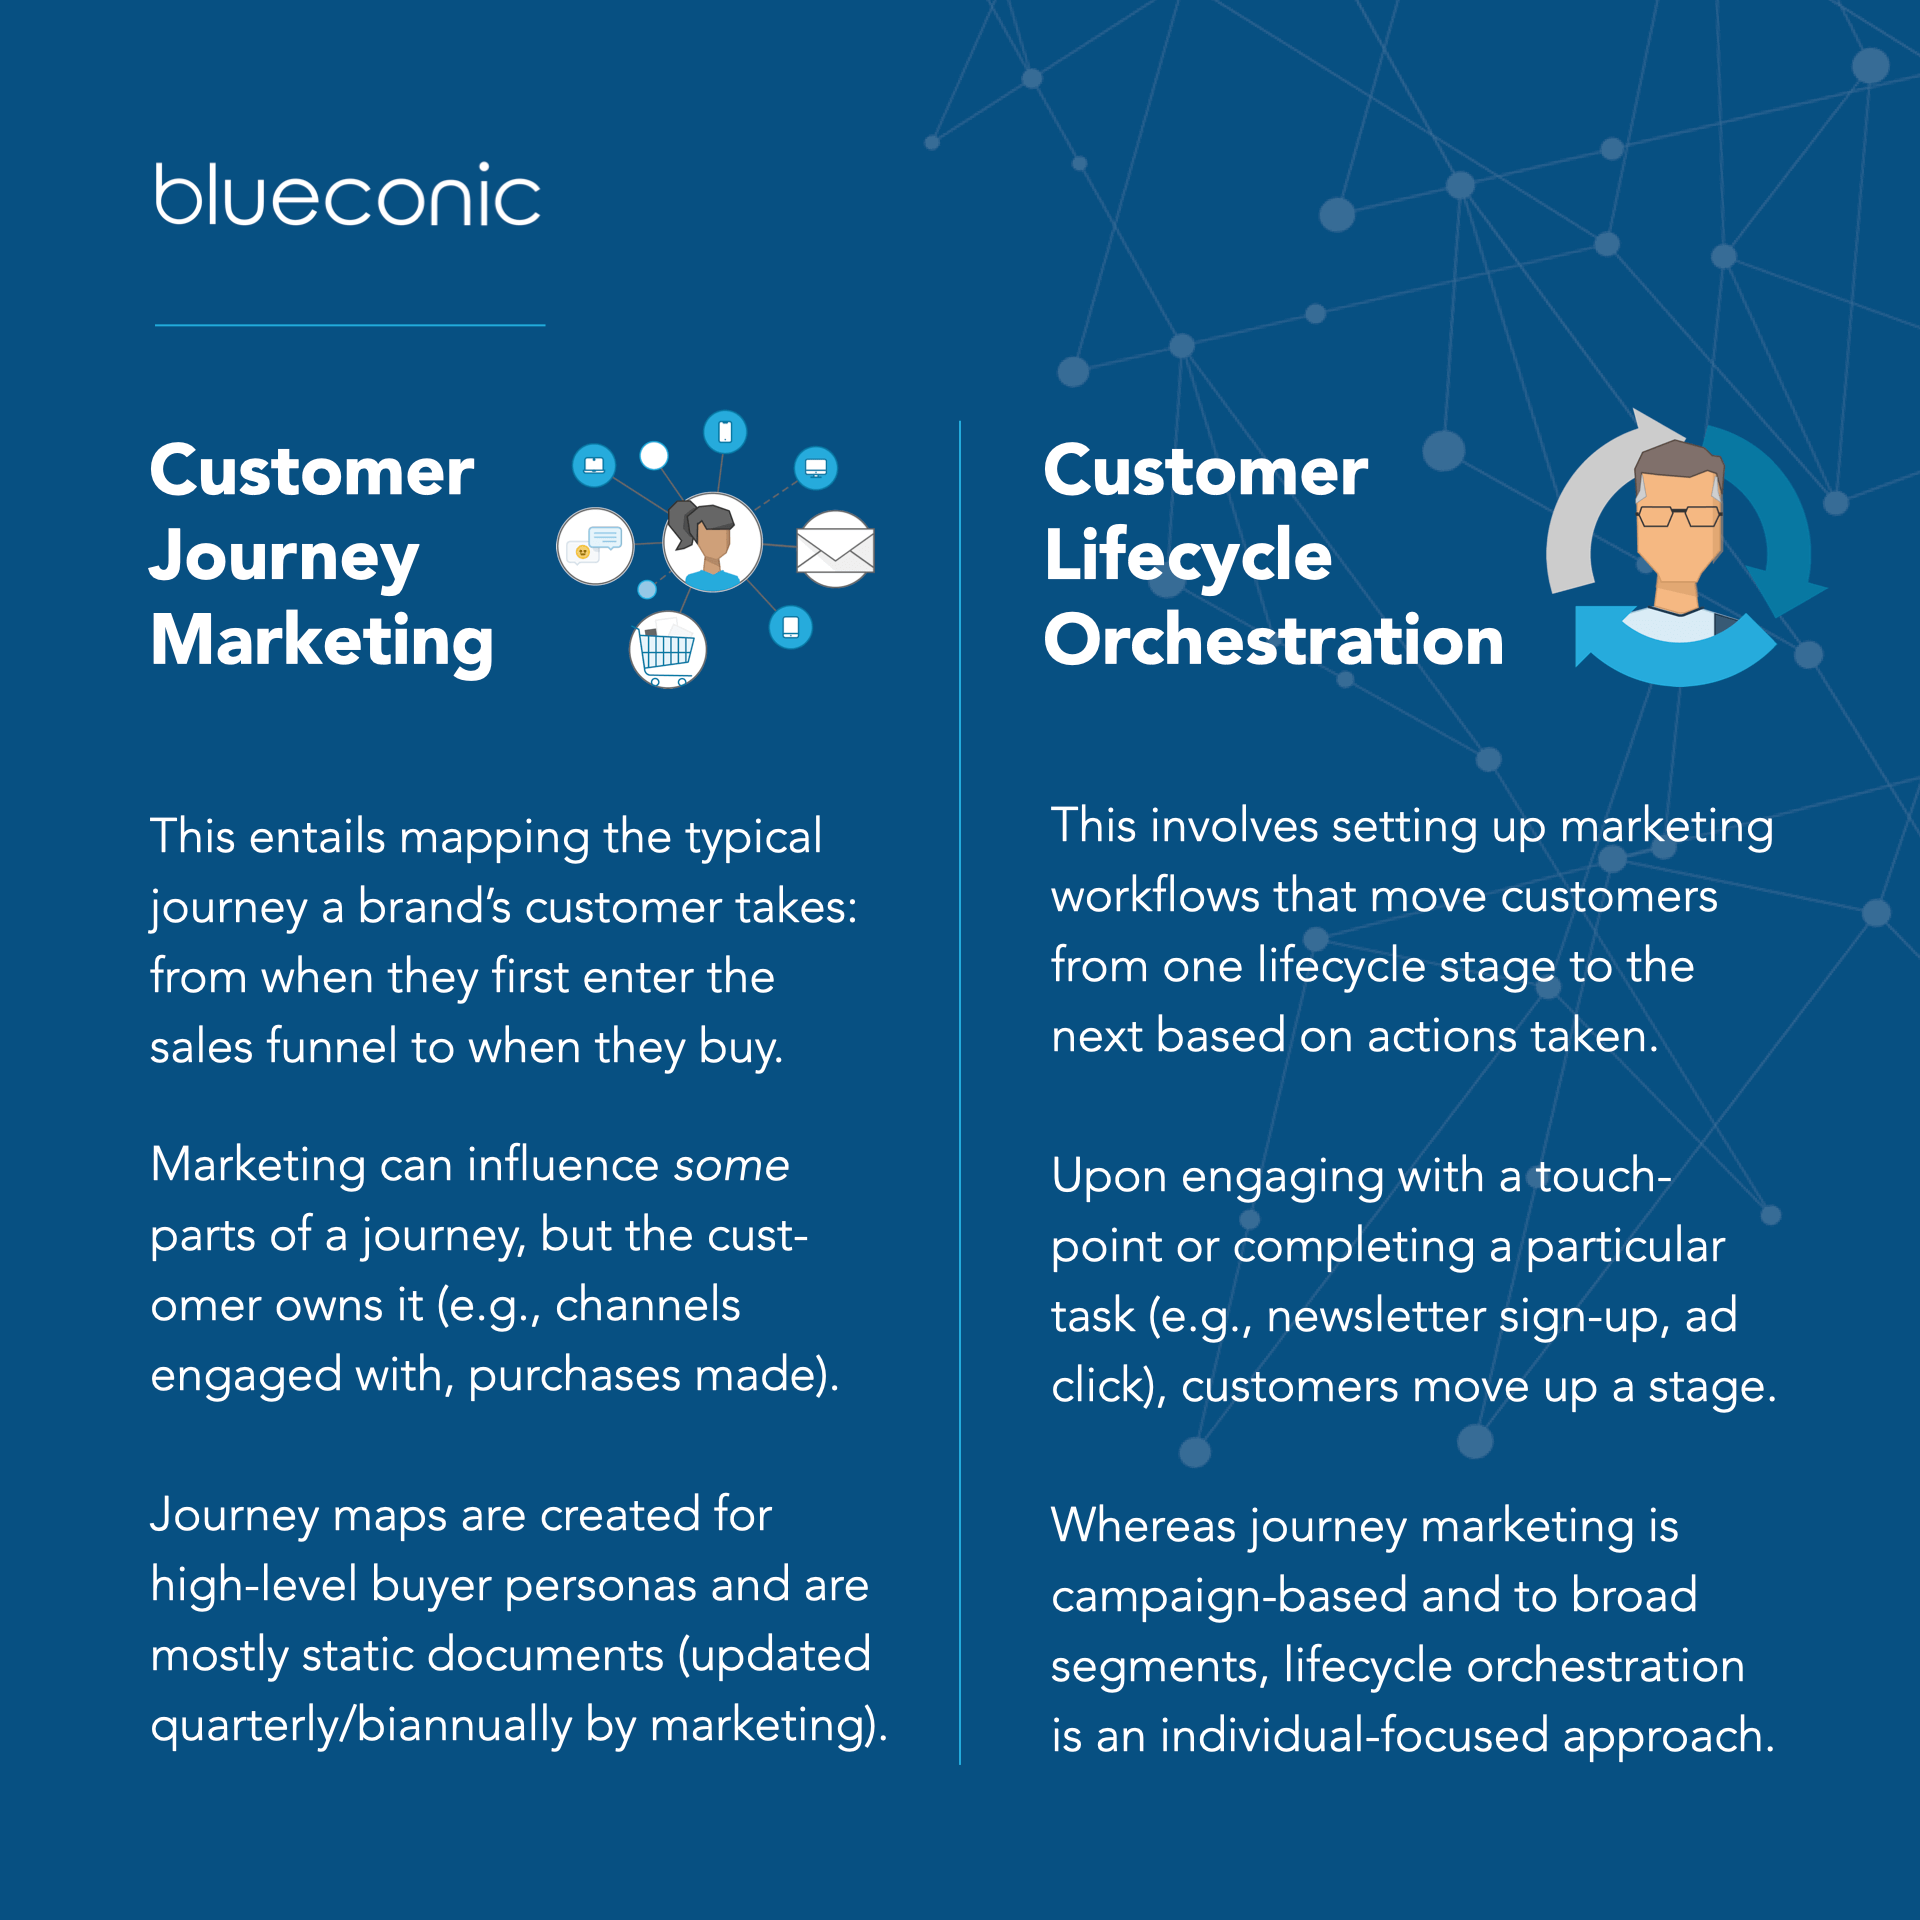 customer journey marketing